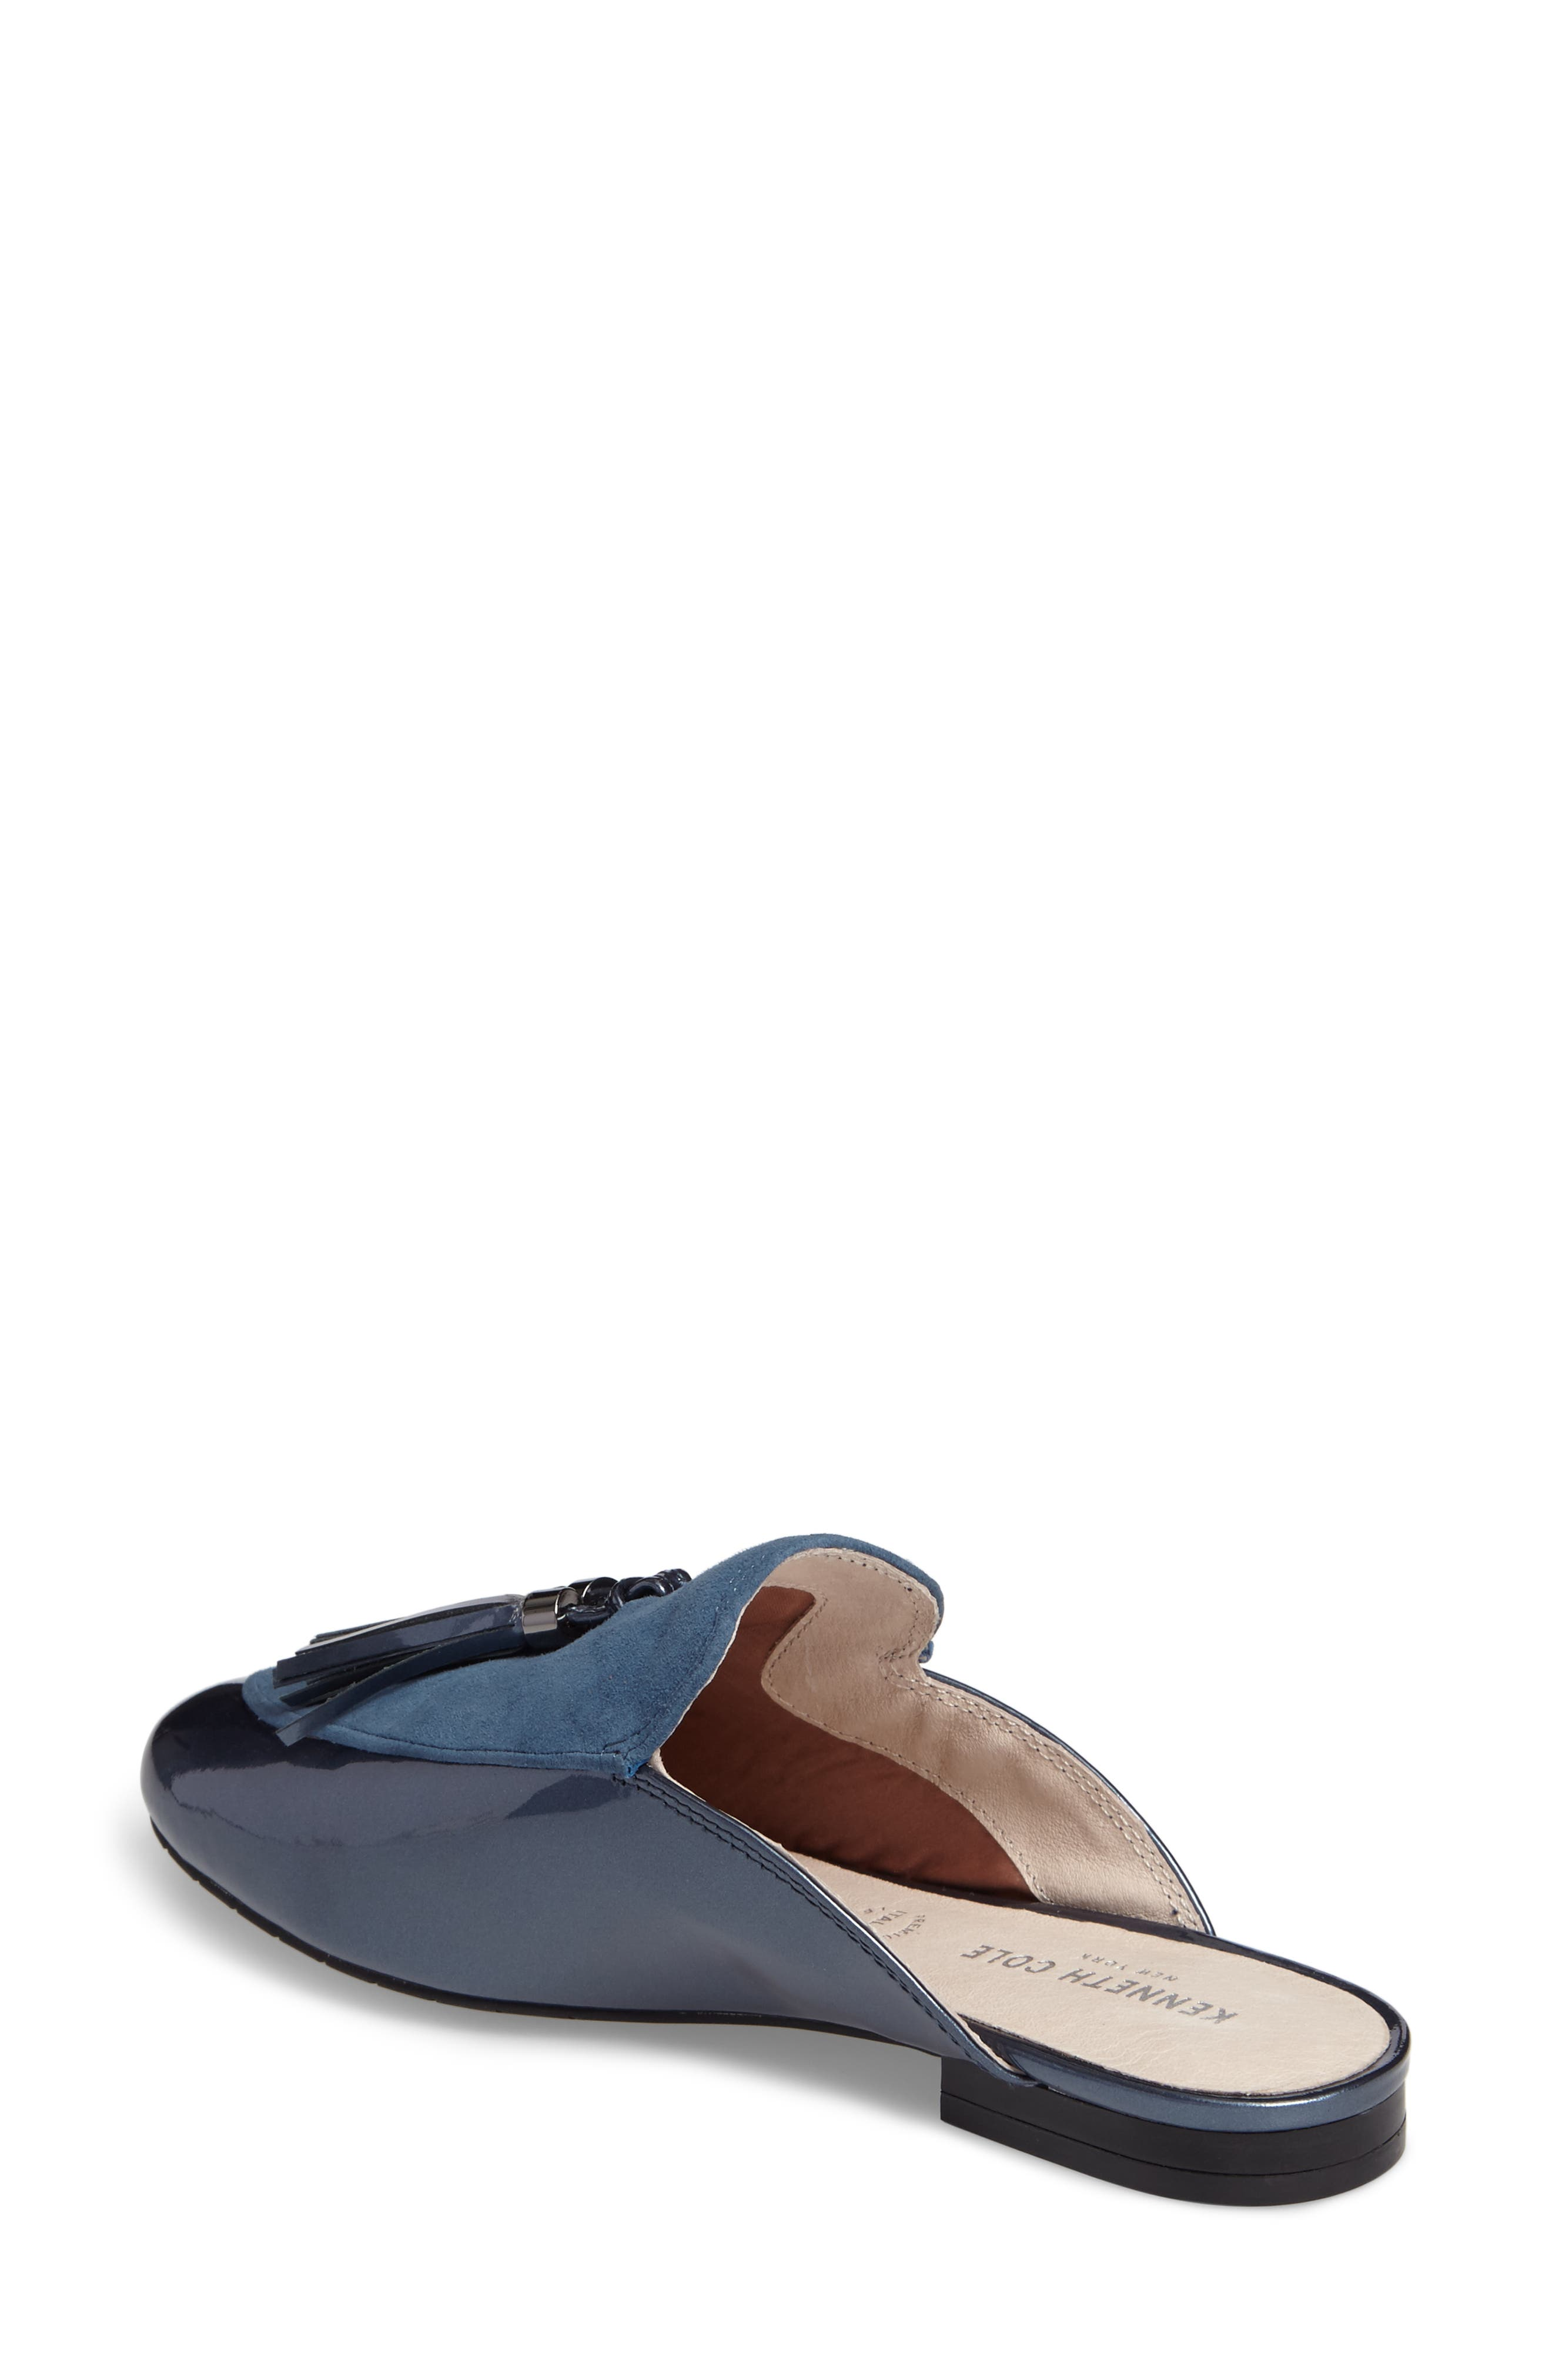 Whinnie Loafer Mule,                             Alternate thumbnail 2, color,                             Indigo Patent Leather